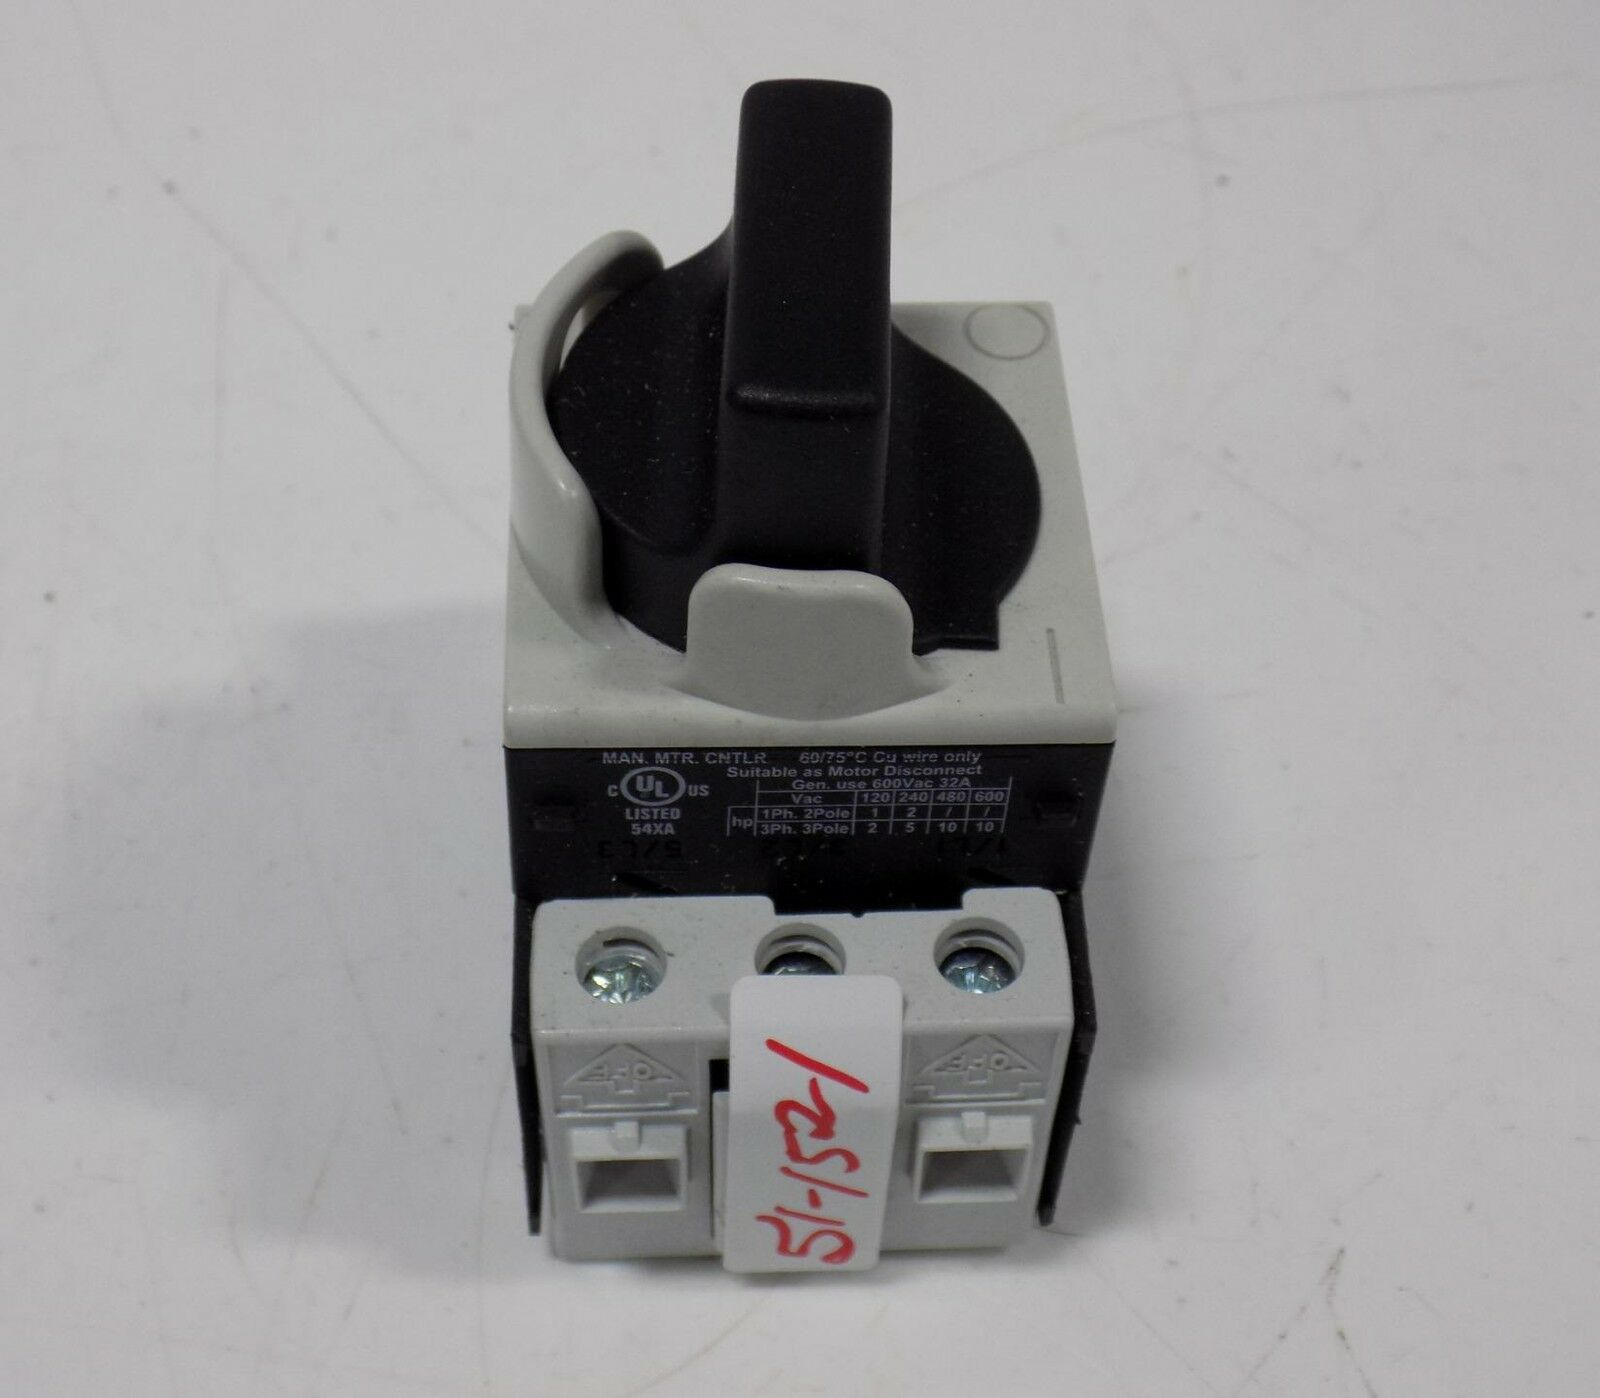 Baco 172100 Disconnect Switch 32a 600vac Ebay 10pcs Reed Switches Magic Induction No Nc Spdt